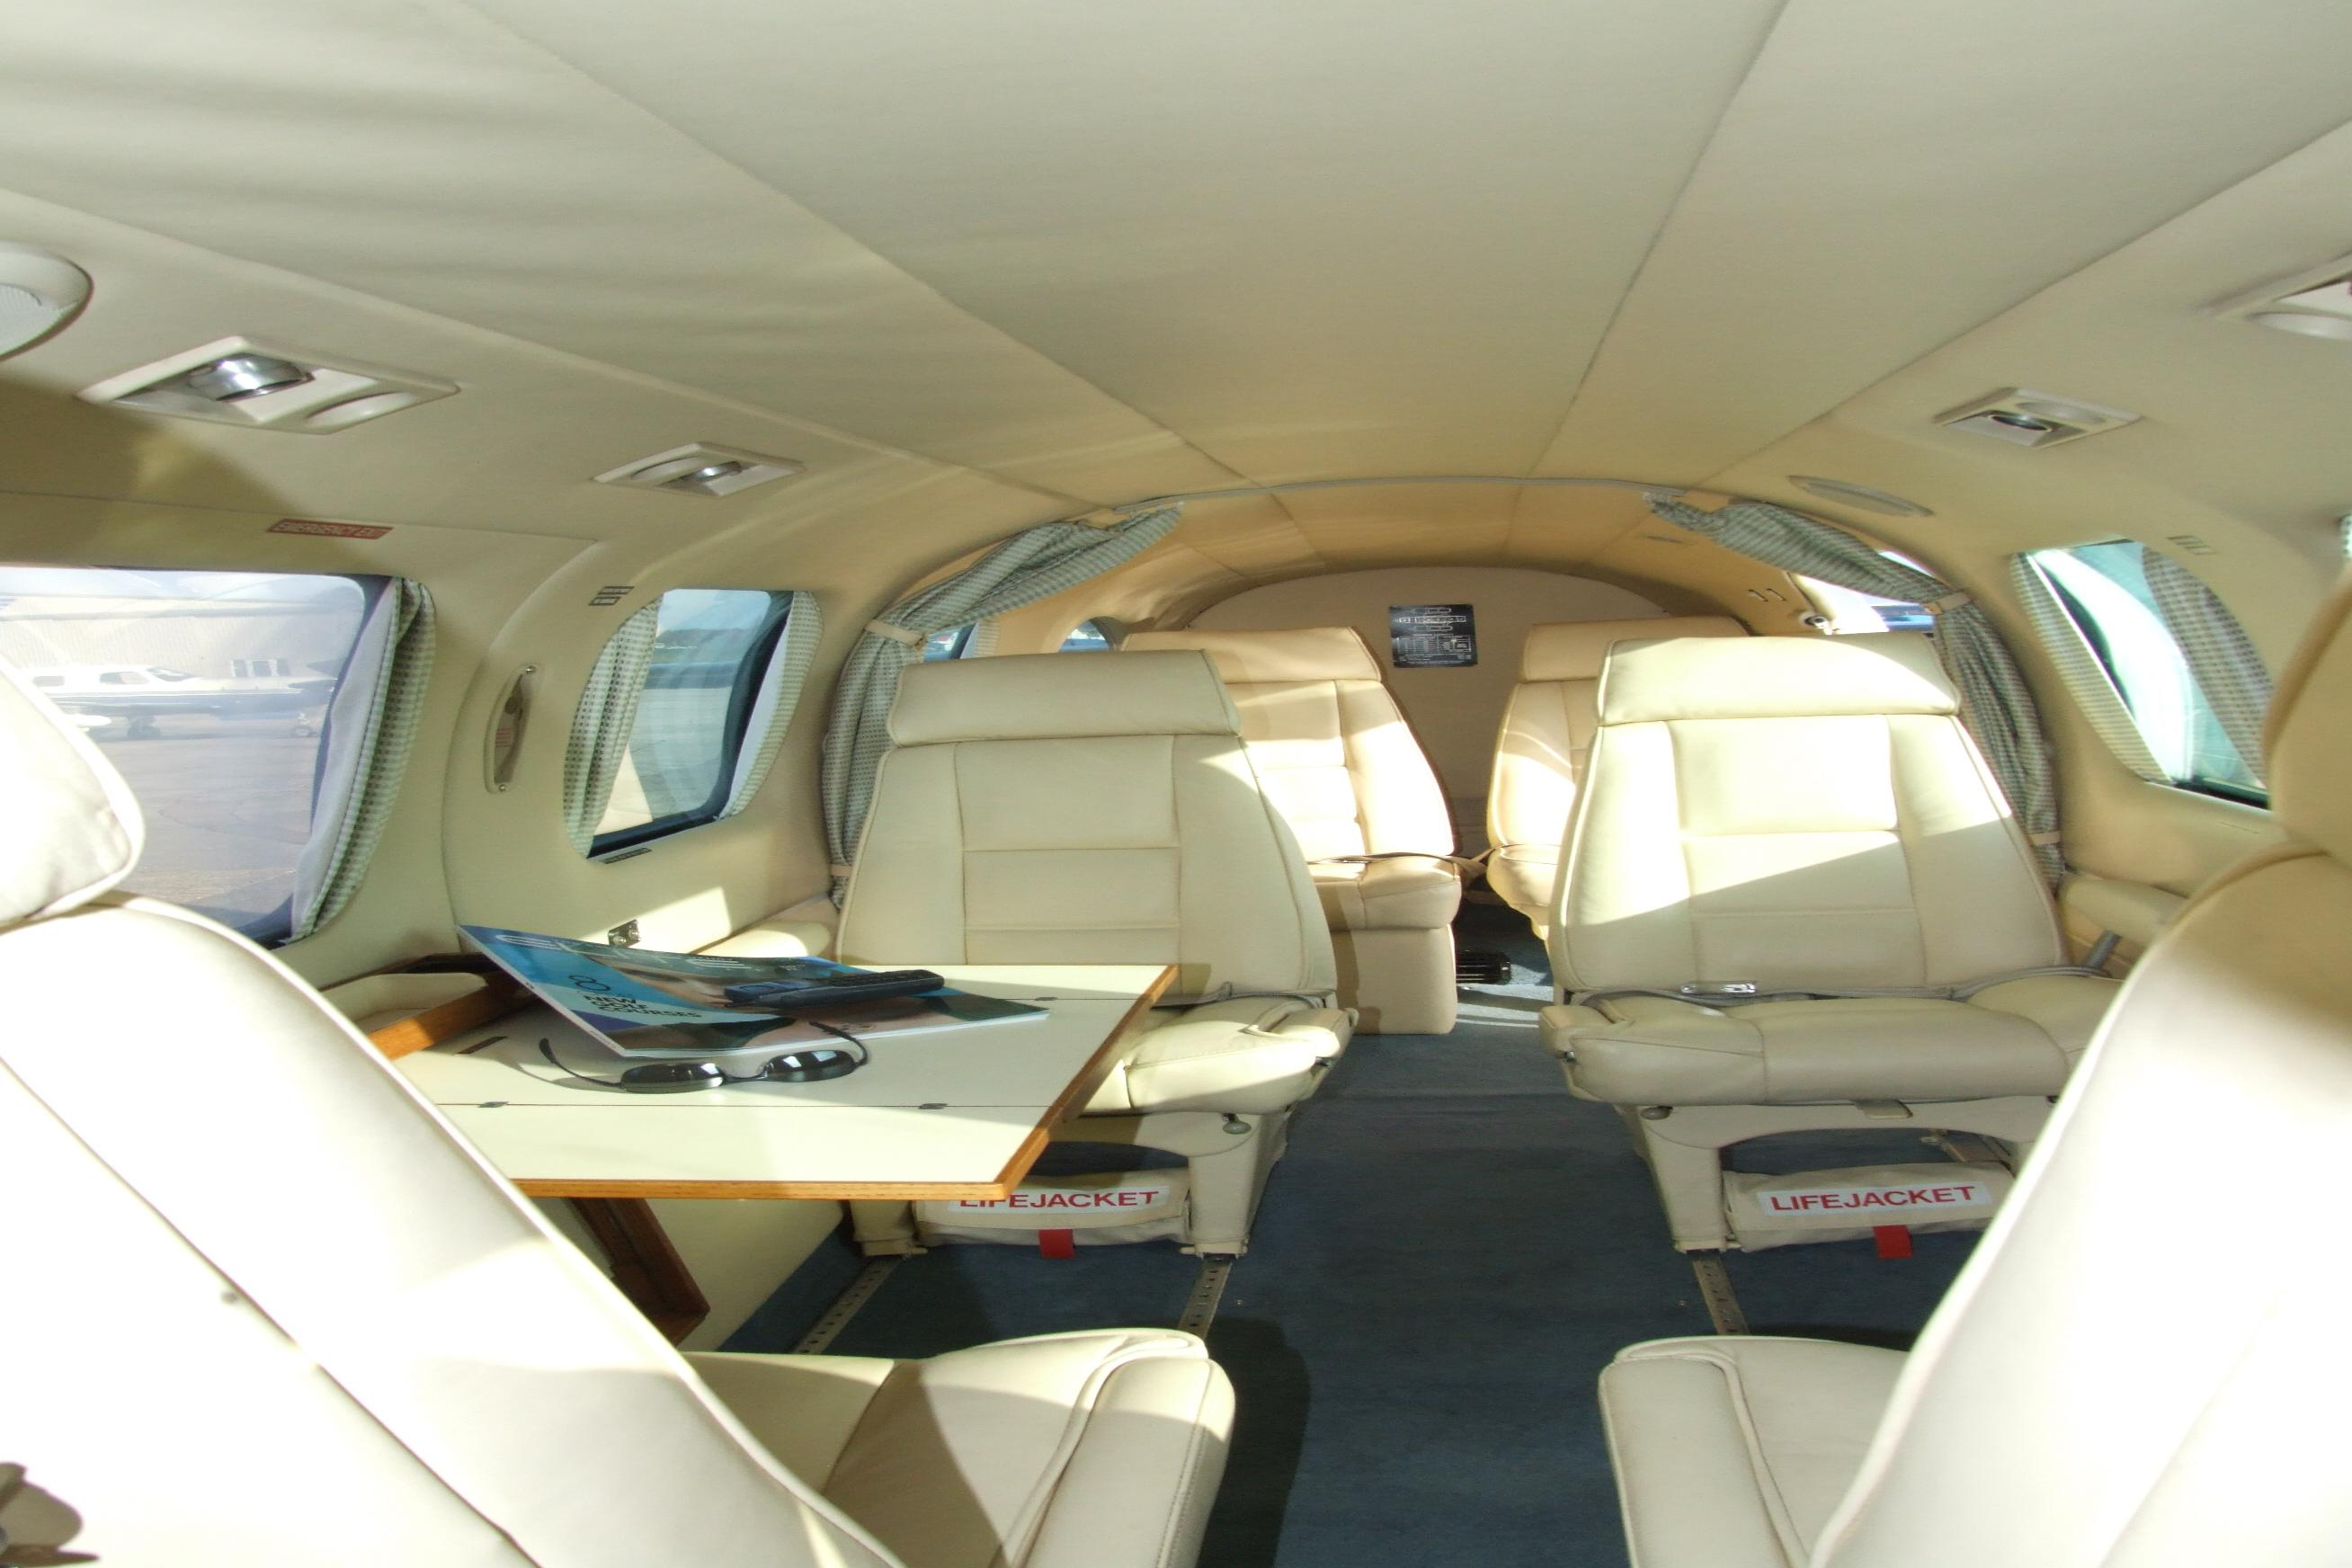 helicopter seats for sale with Piper Pa31 Navajo Chieftain on 11 Of The Most Expensive Private Helicopters Money Can Buy additionally Aw189 vip winch also As332 L1 as well Smallprop Aircraft Hire moreover 130.